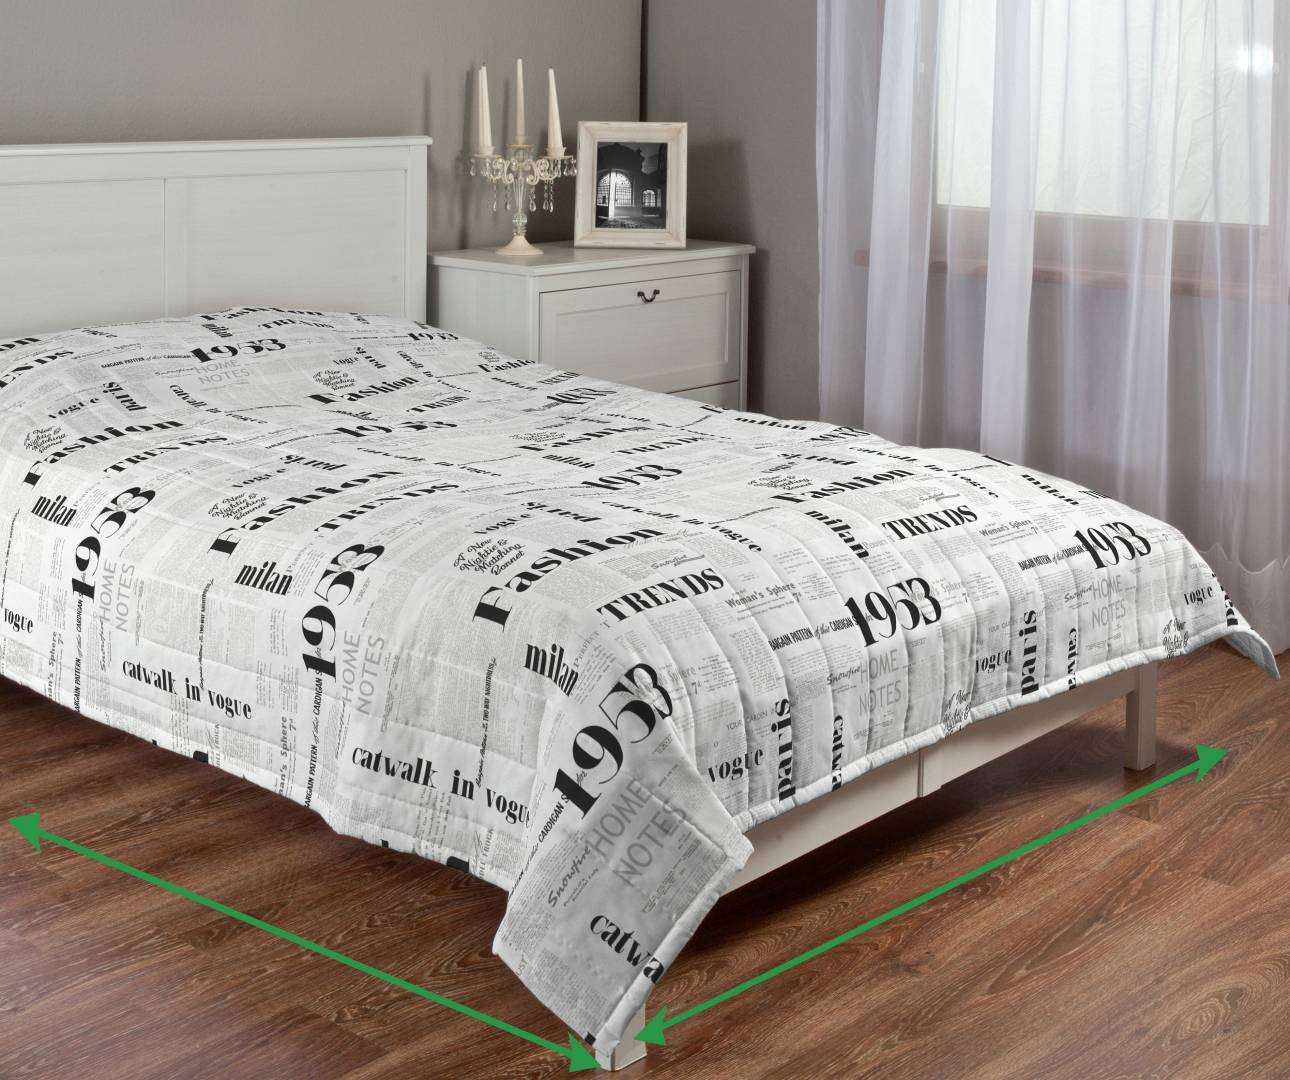 Quilted throw (vertical quilt pattern) in collection Freestyle, fabric: 137-60